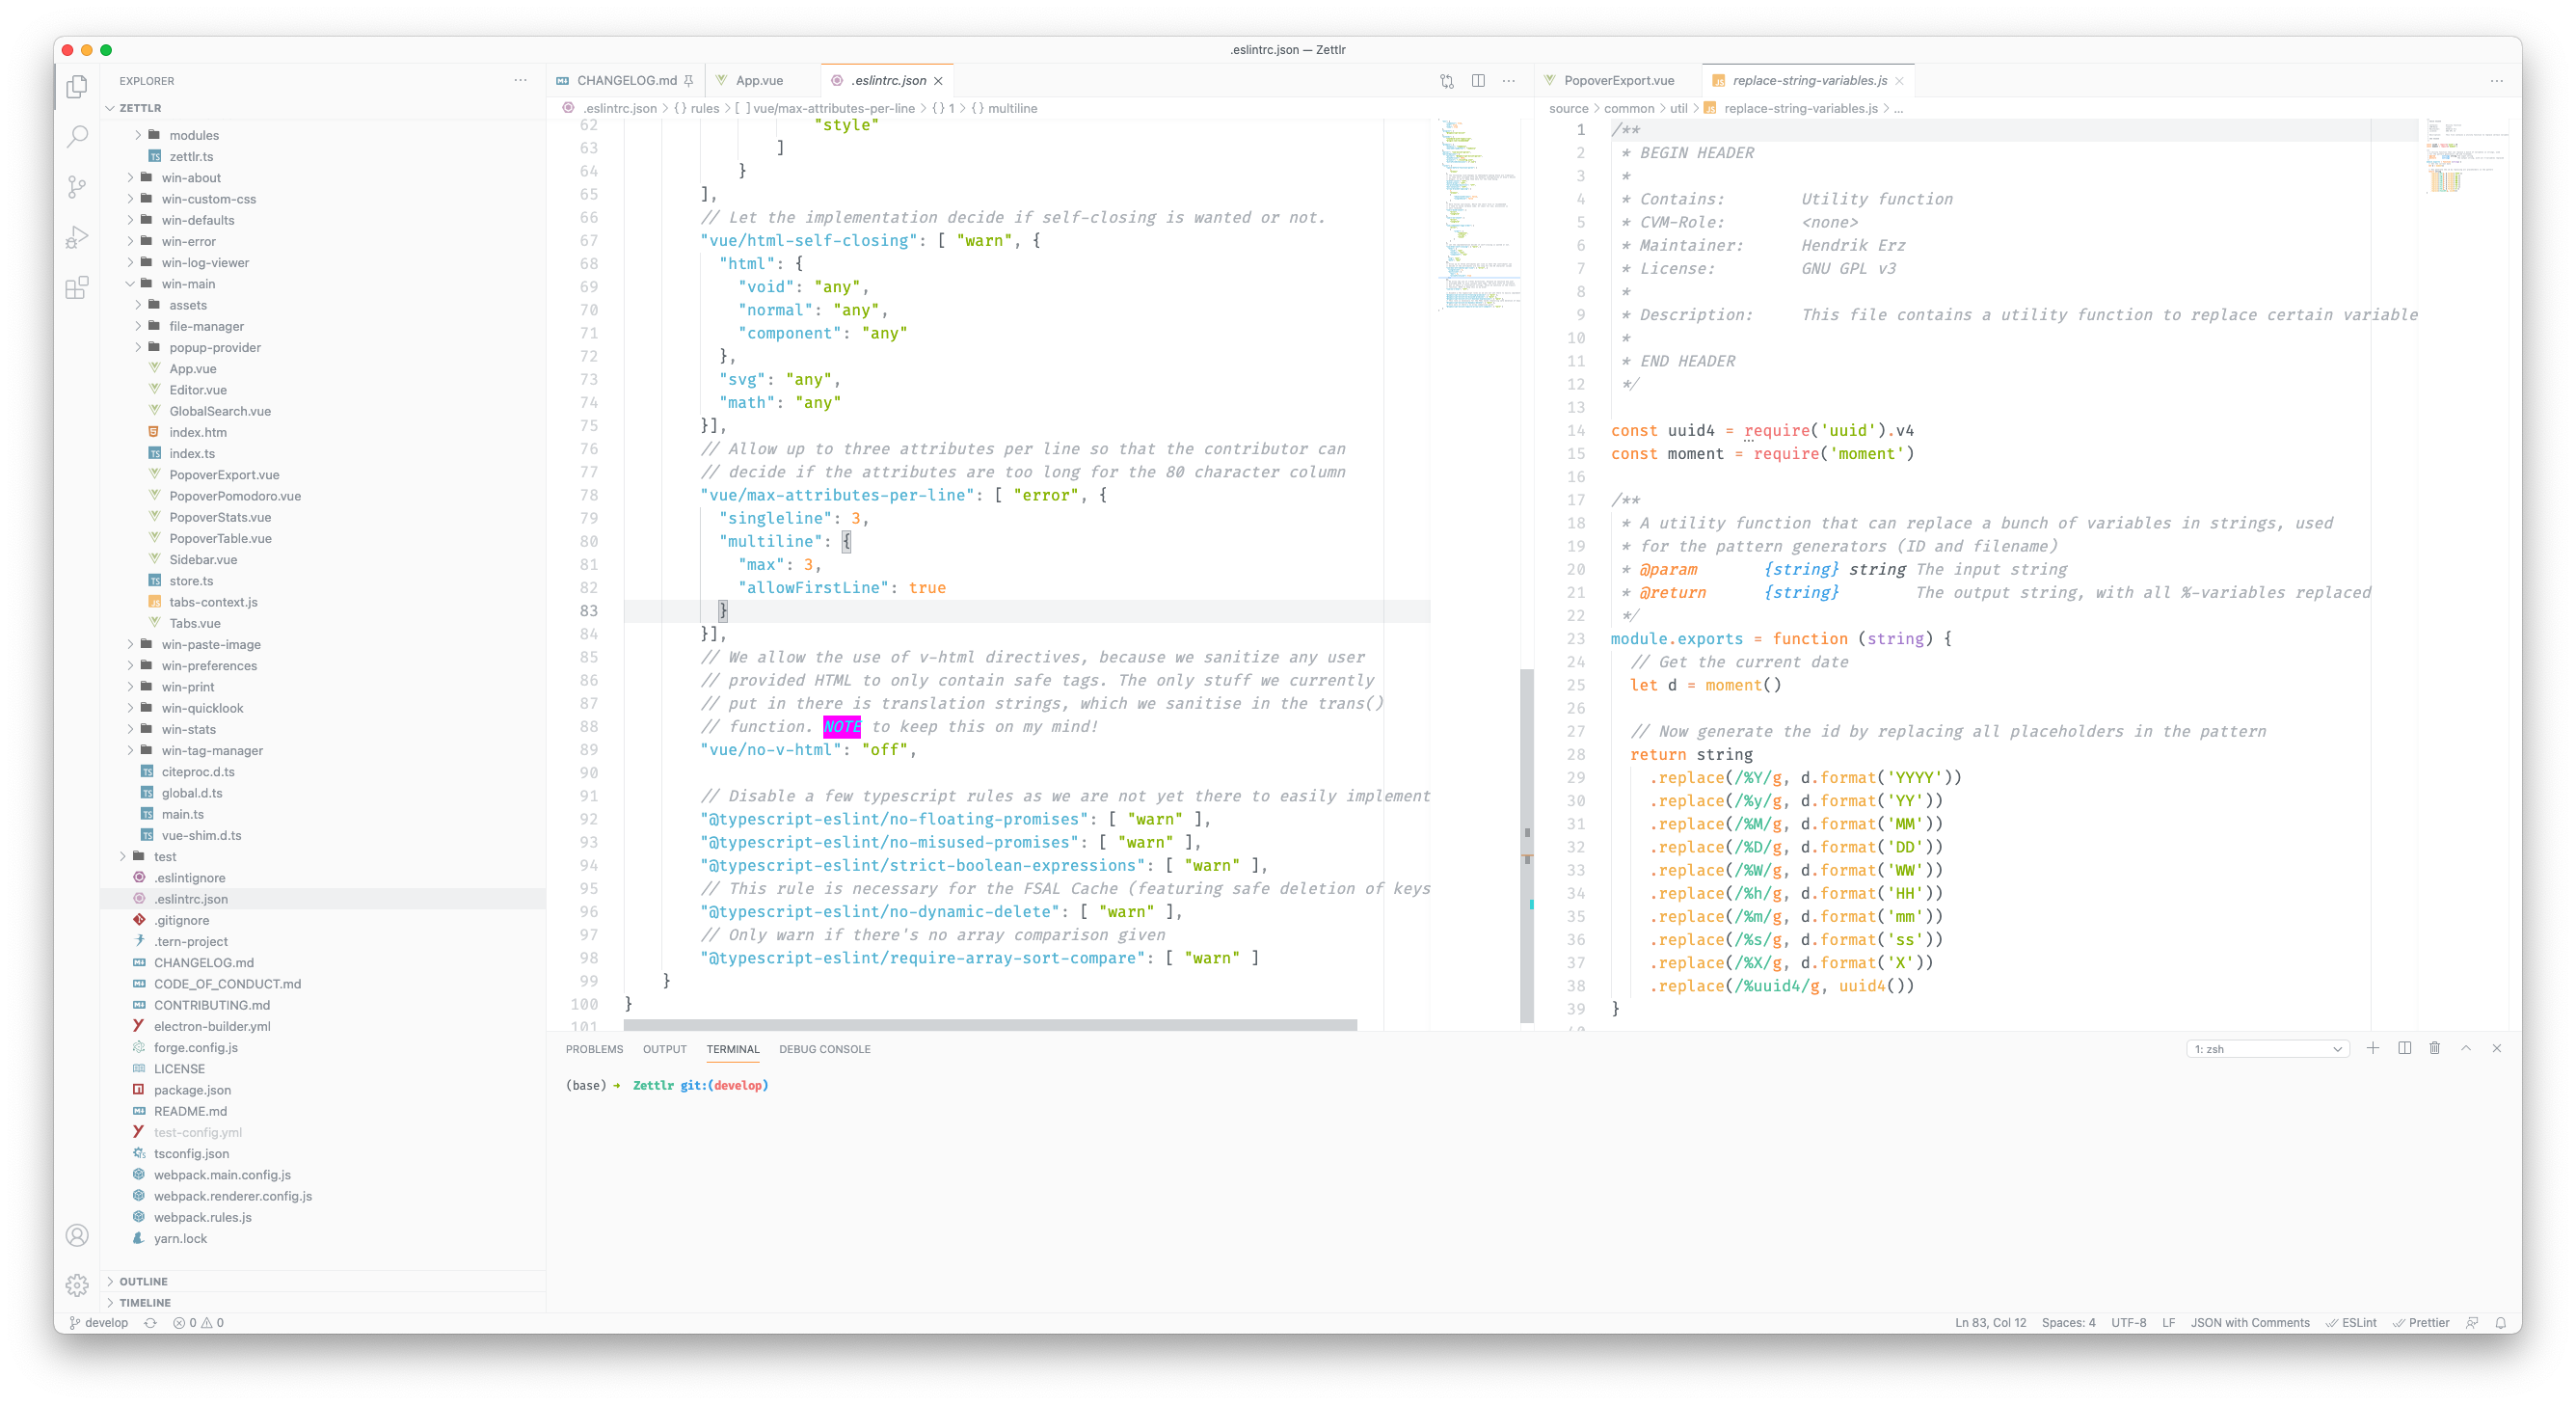 In this screenshot you can see several components of VS Code at work. Take note especially of the highlighted NOTE keyword, which is being done using the TODO Highlight plugin, elaborated upon further below. VS Code also respects various configuration files.